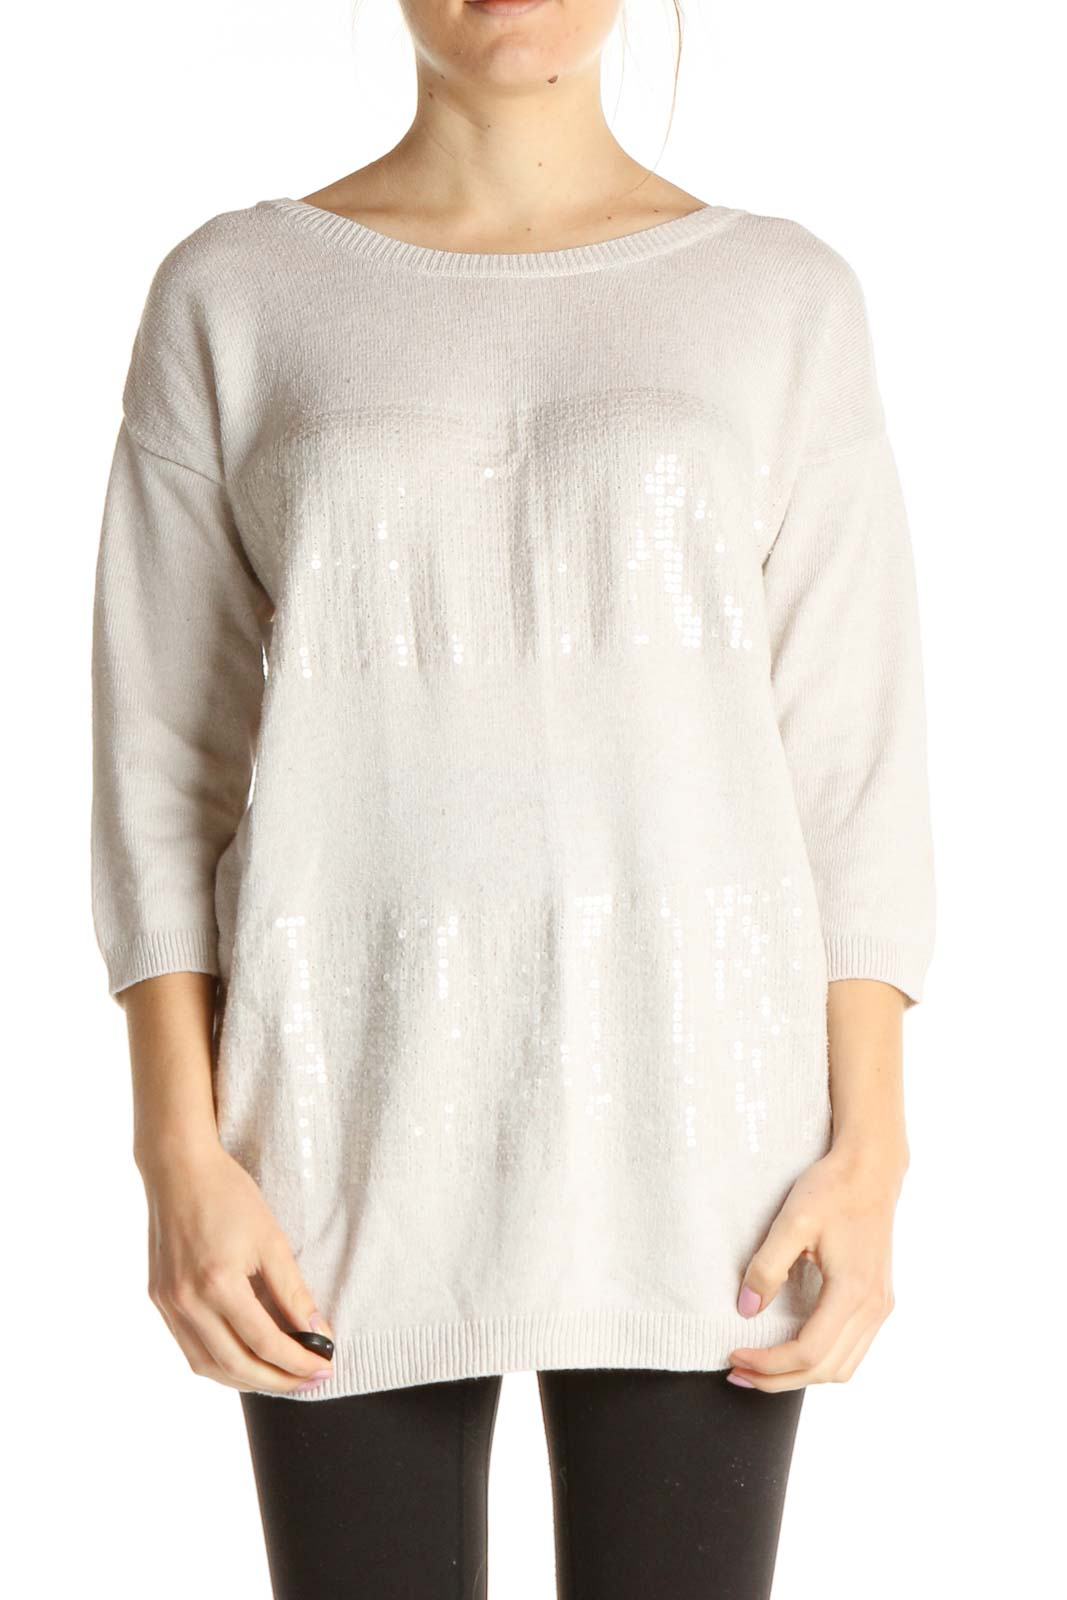 Beige Sequin All Day Wear Sweater Front